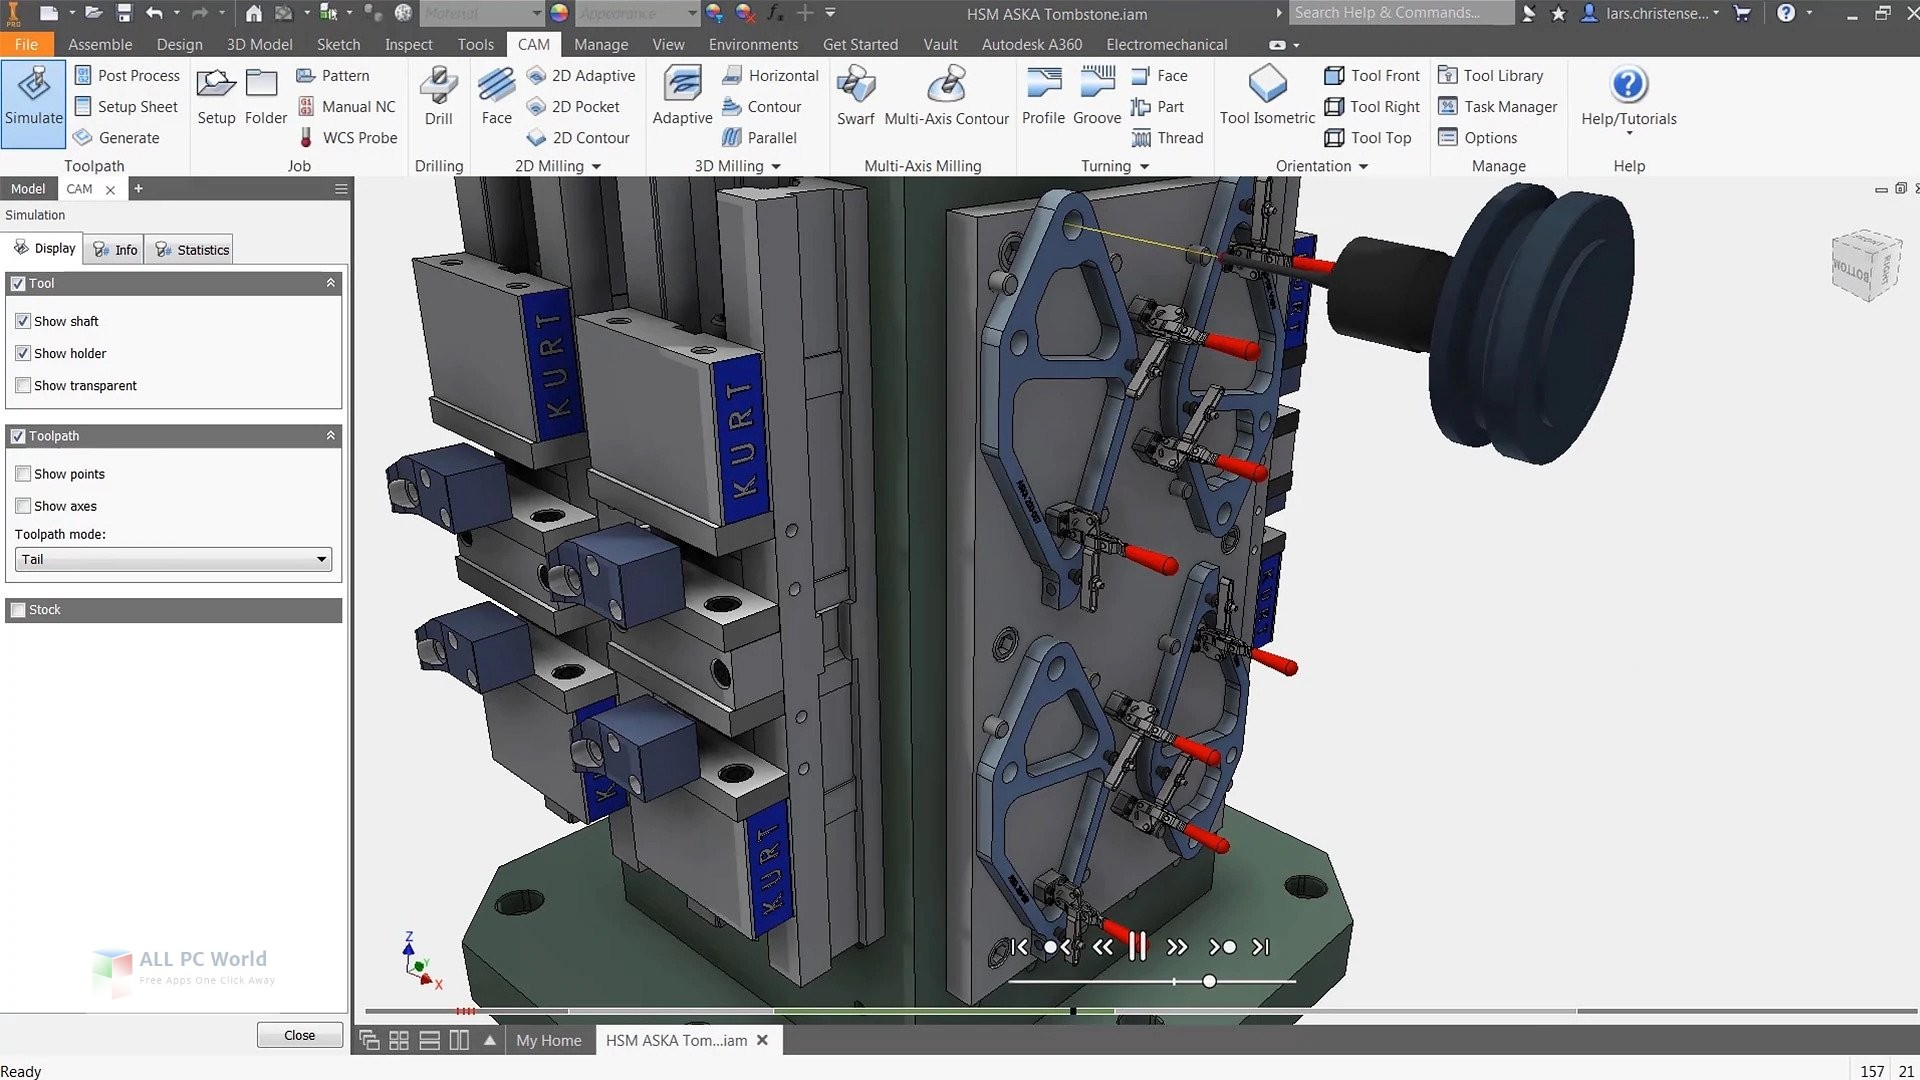 InventorCAM 2020 for Autodesk Inventor x64 Download